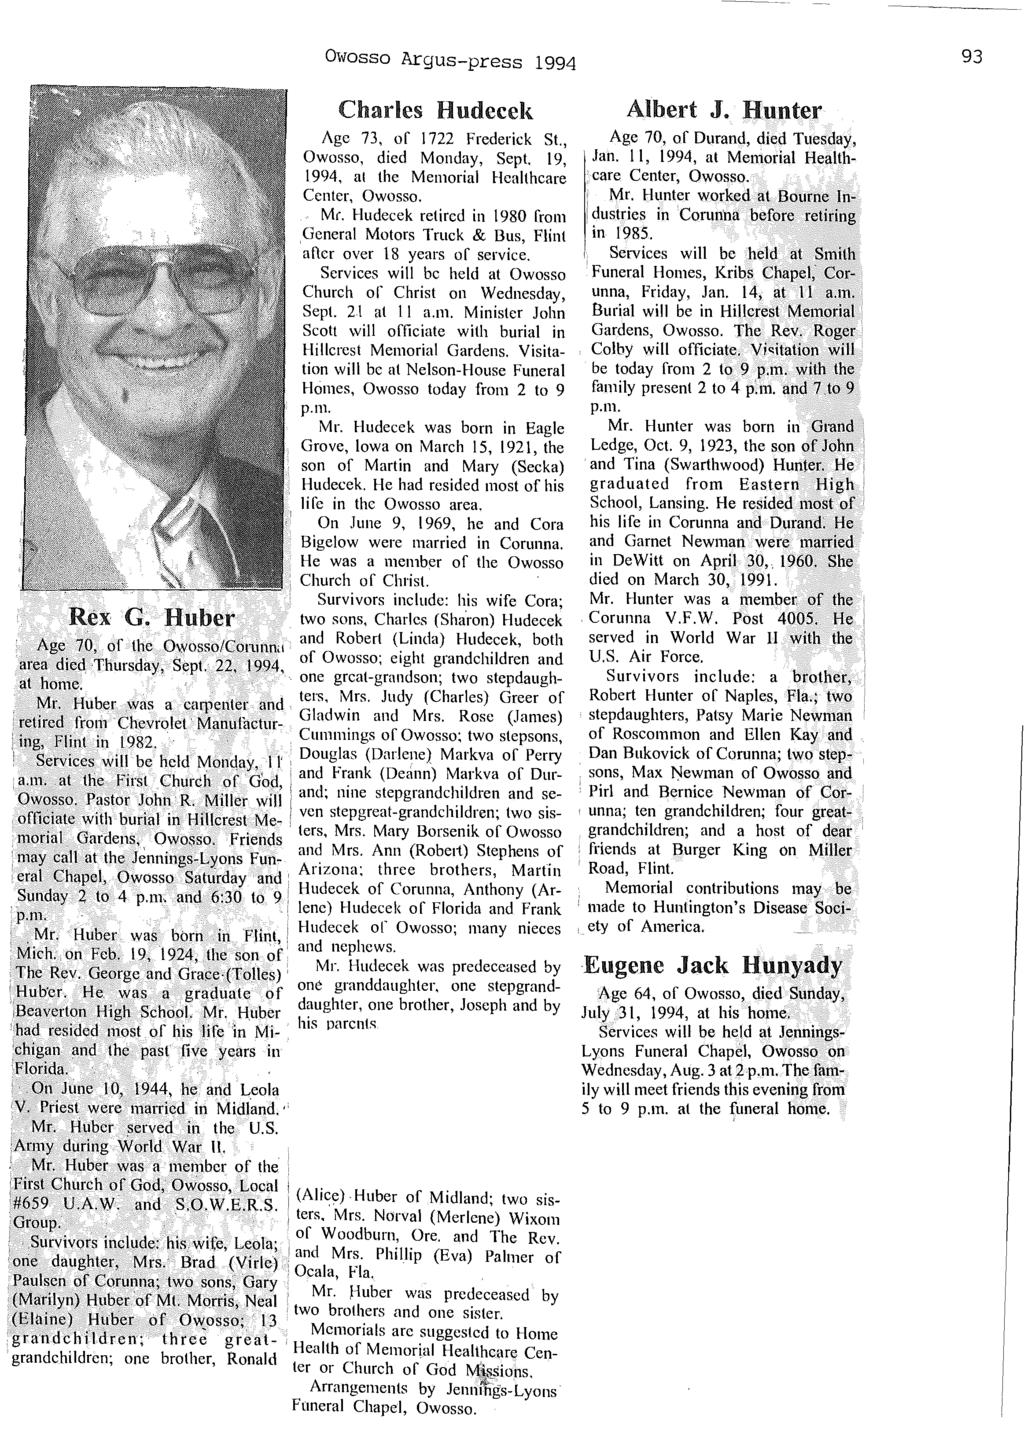 Owosso Argus-press 1994 93 Rex G. Huber Charles Hudecek Age 73, of 1722 Frederick St., Owosso, died Monday, Sept. 19,.1994, at the Mem